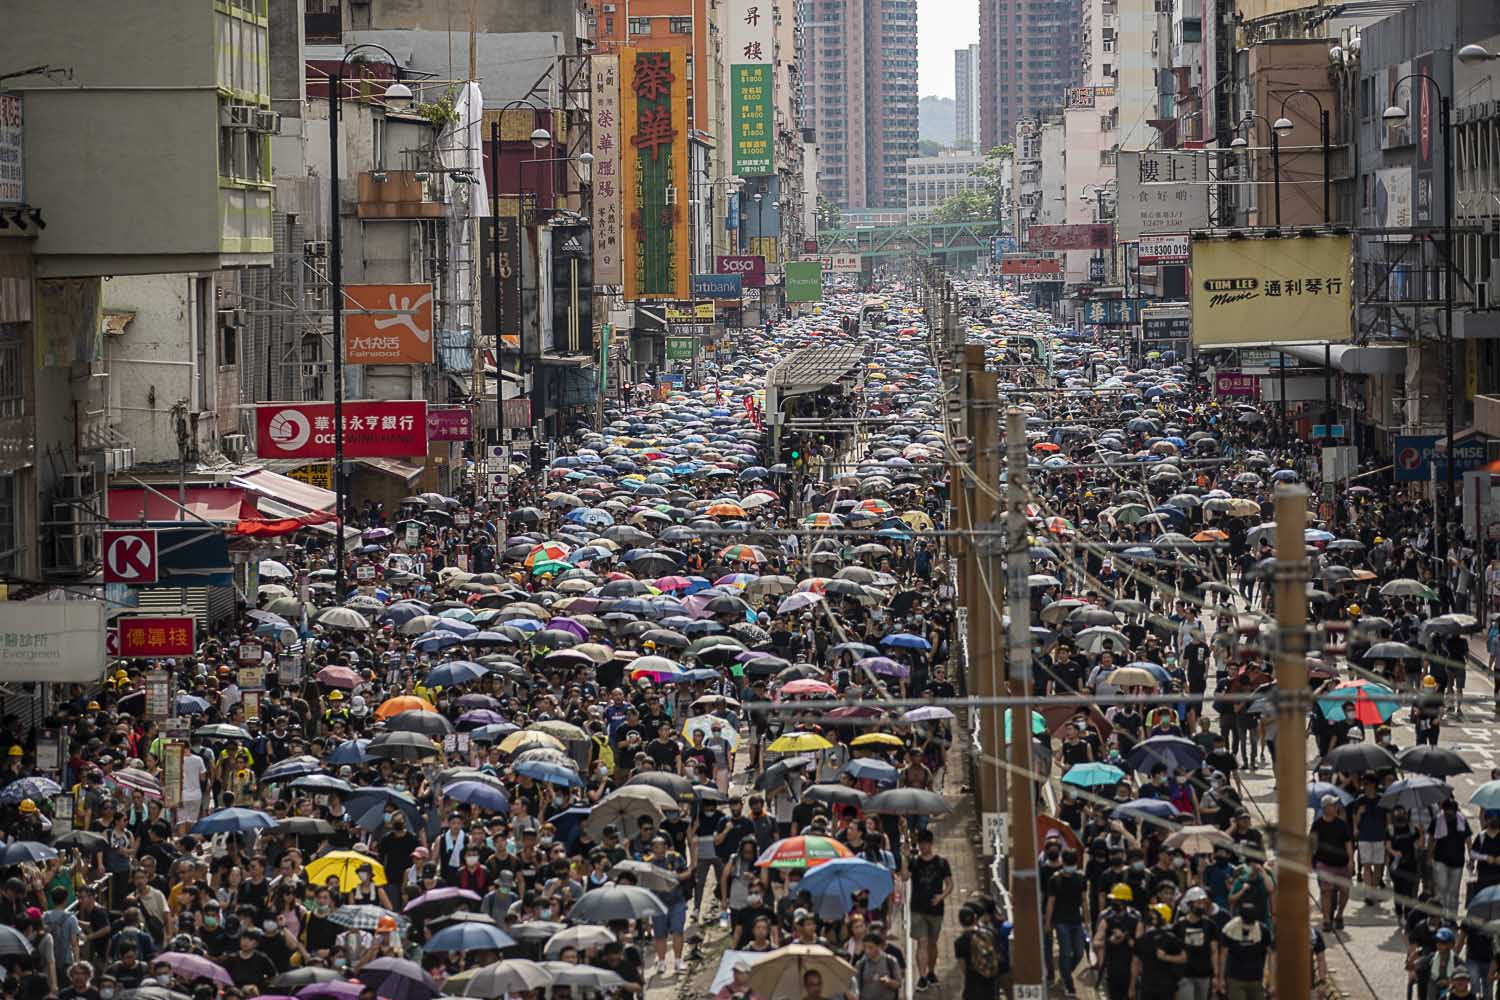 July 27, 2019: An estimated 288,000 people march through Yuen Long